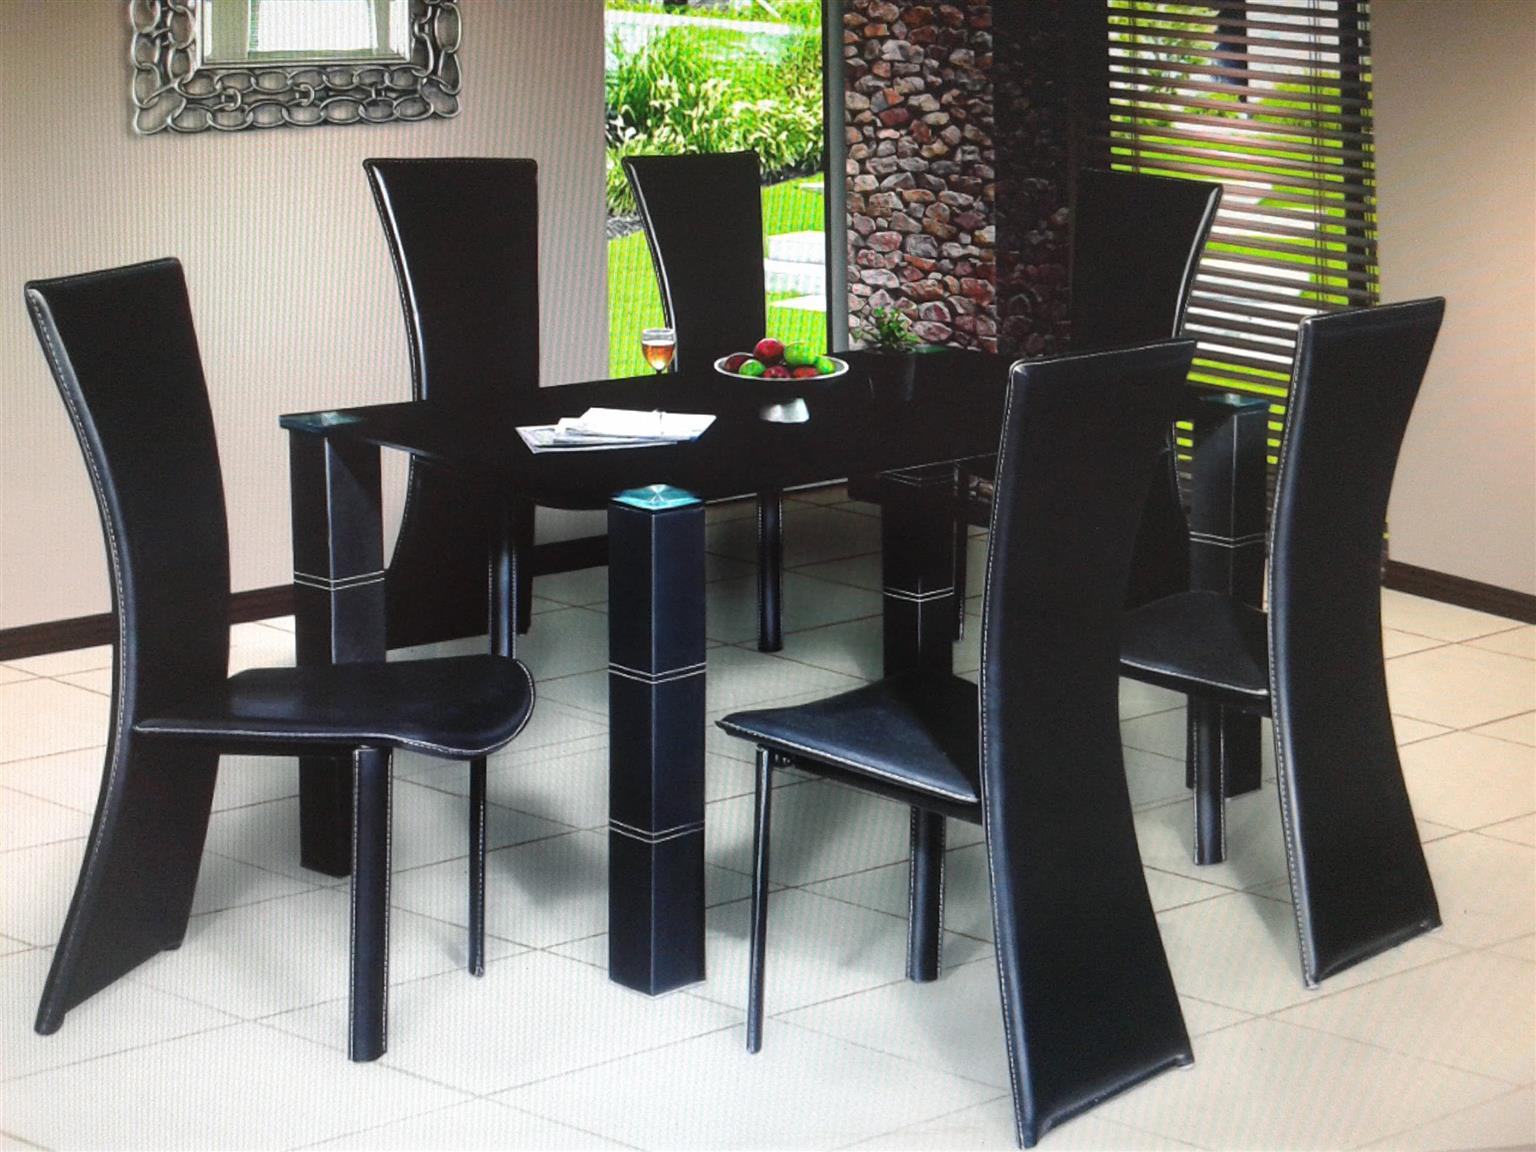 Dining Room suite with 6 chair.